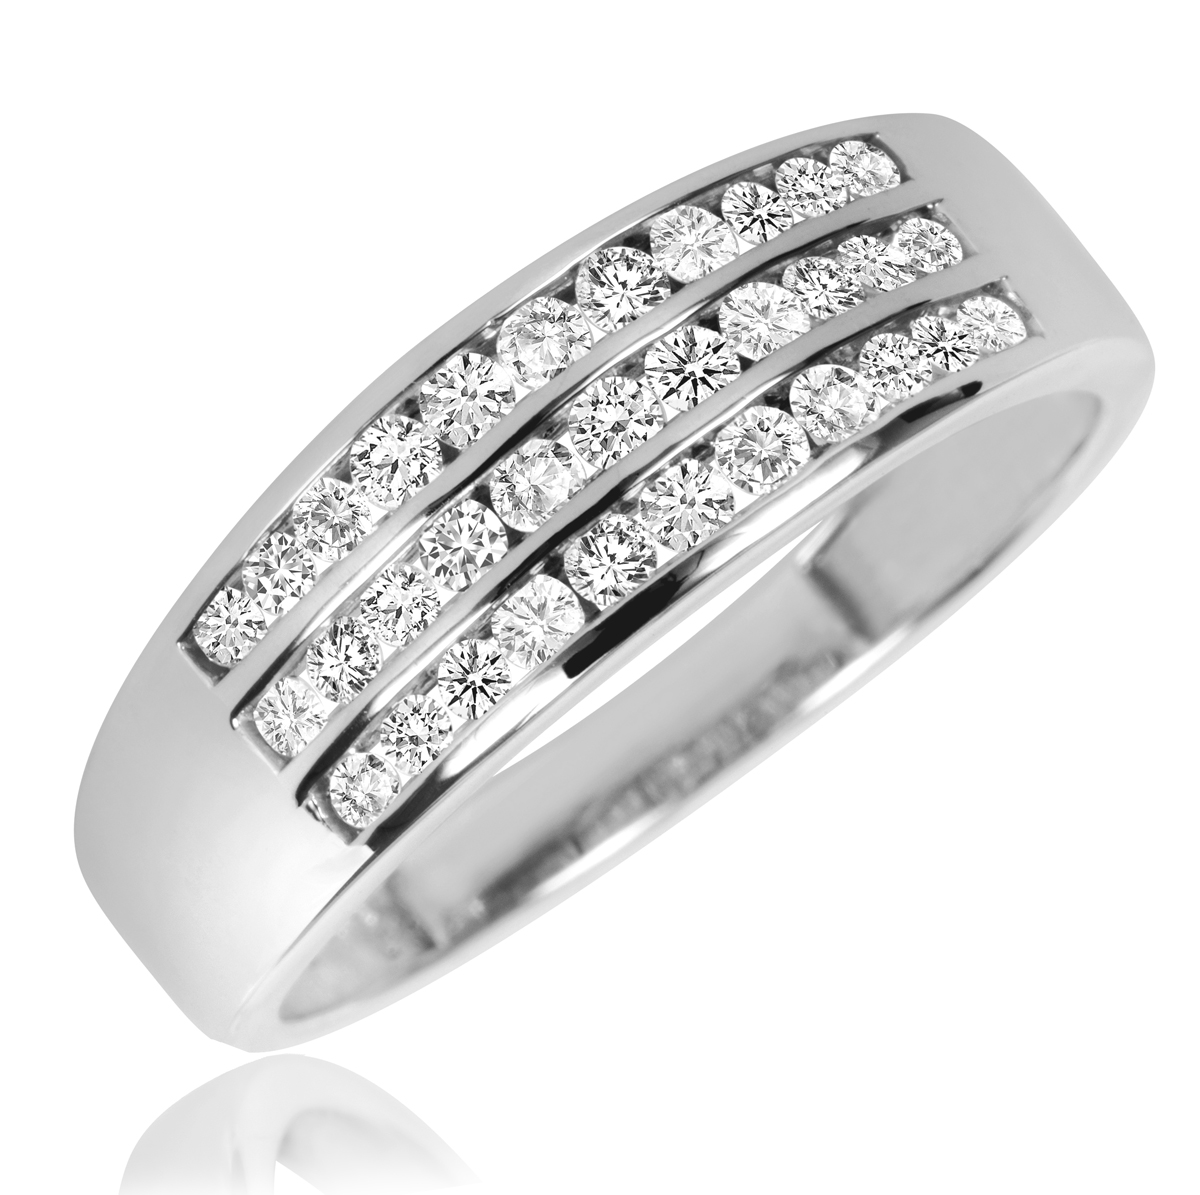 2 15 CT TW Diamond Ladies Engagement Ring Wedding